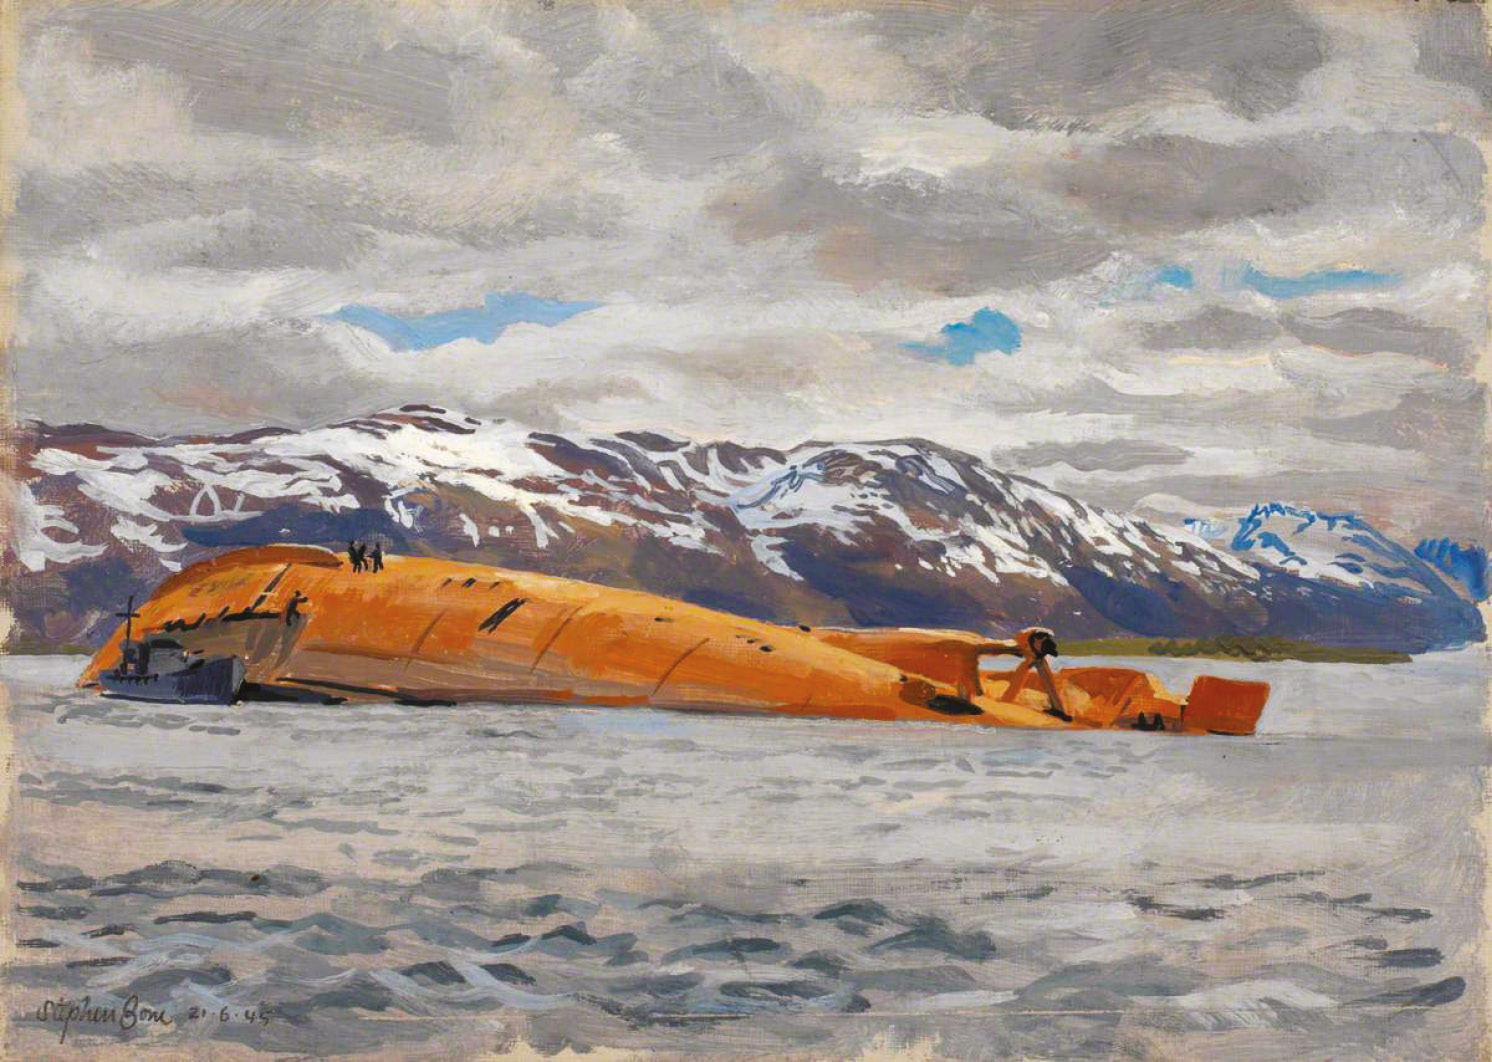 LEFT The Wreck of the 'Tirpitz', detail from a painting by Stephen Bone (June 1945). ABOVE RAF Wing Commander Willie Tait (on the left) standing with an unknown Australian officer on the wreck of Tirpitz in late 1945.